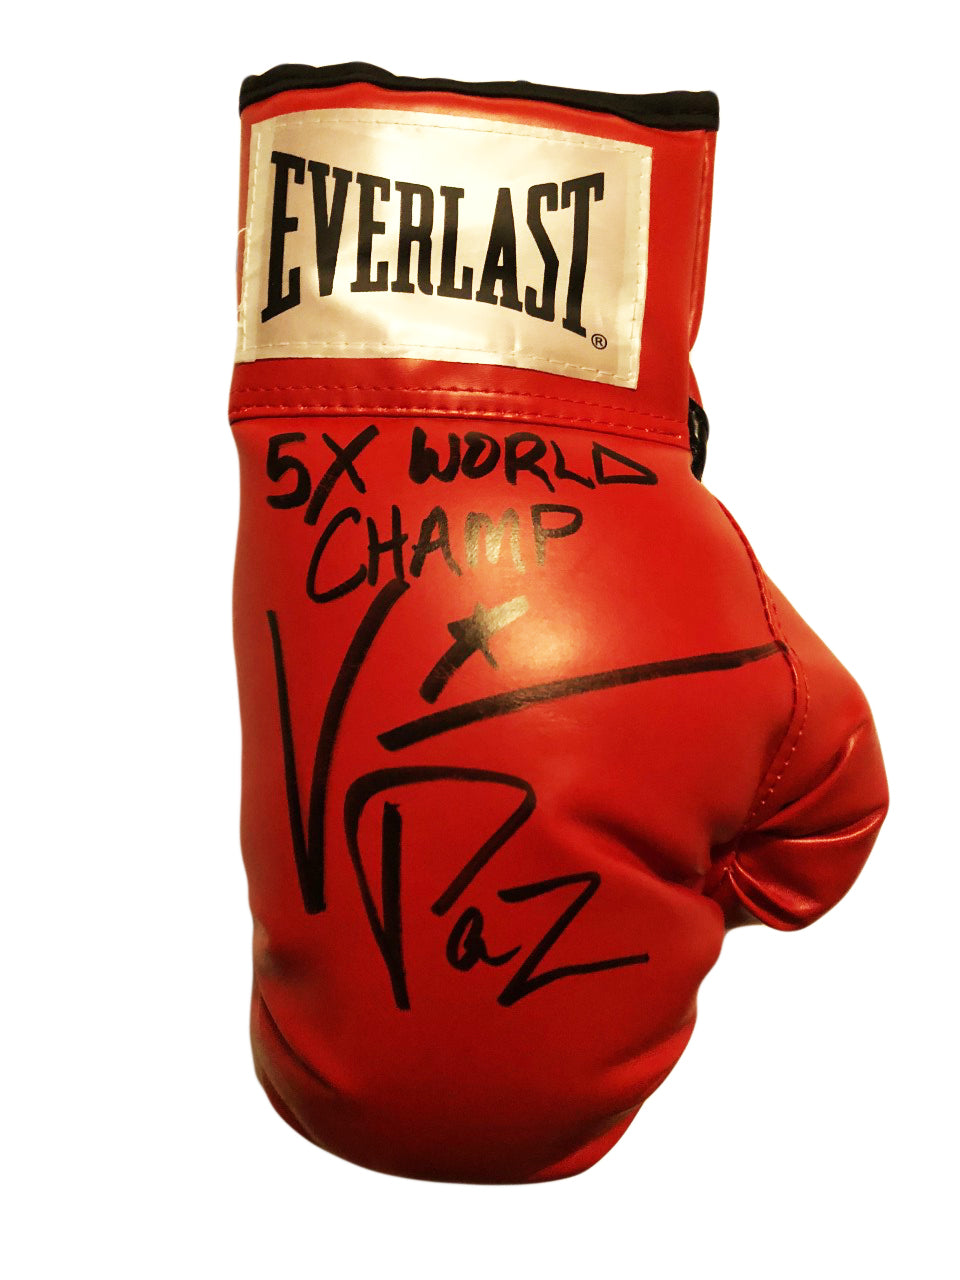 Vinny Paz Pazienza Signed Autographed Boxing Glove 5X World Champ 50 Wins